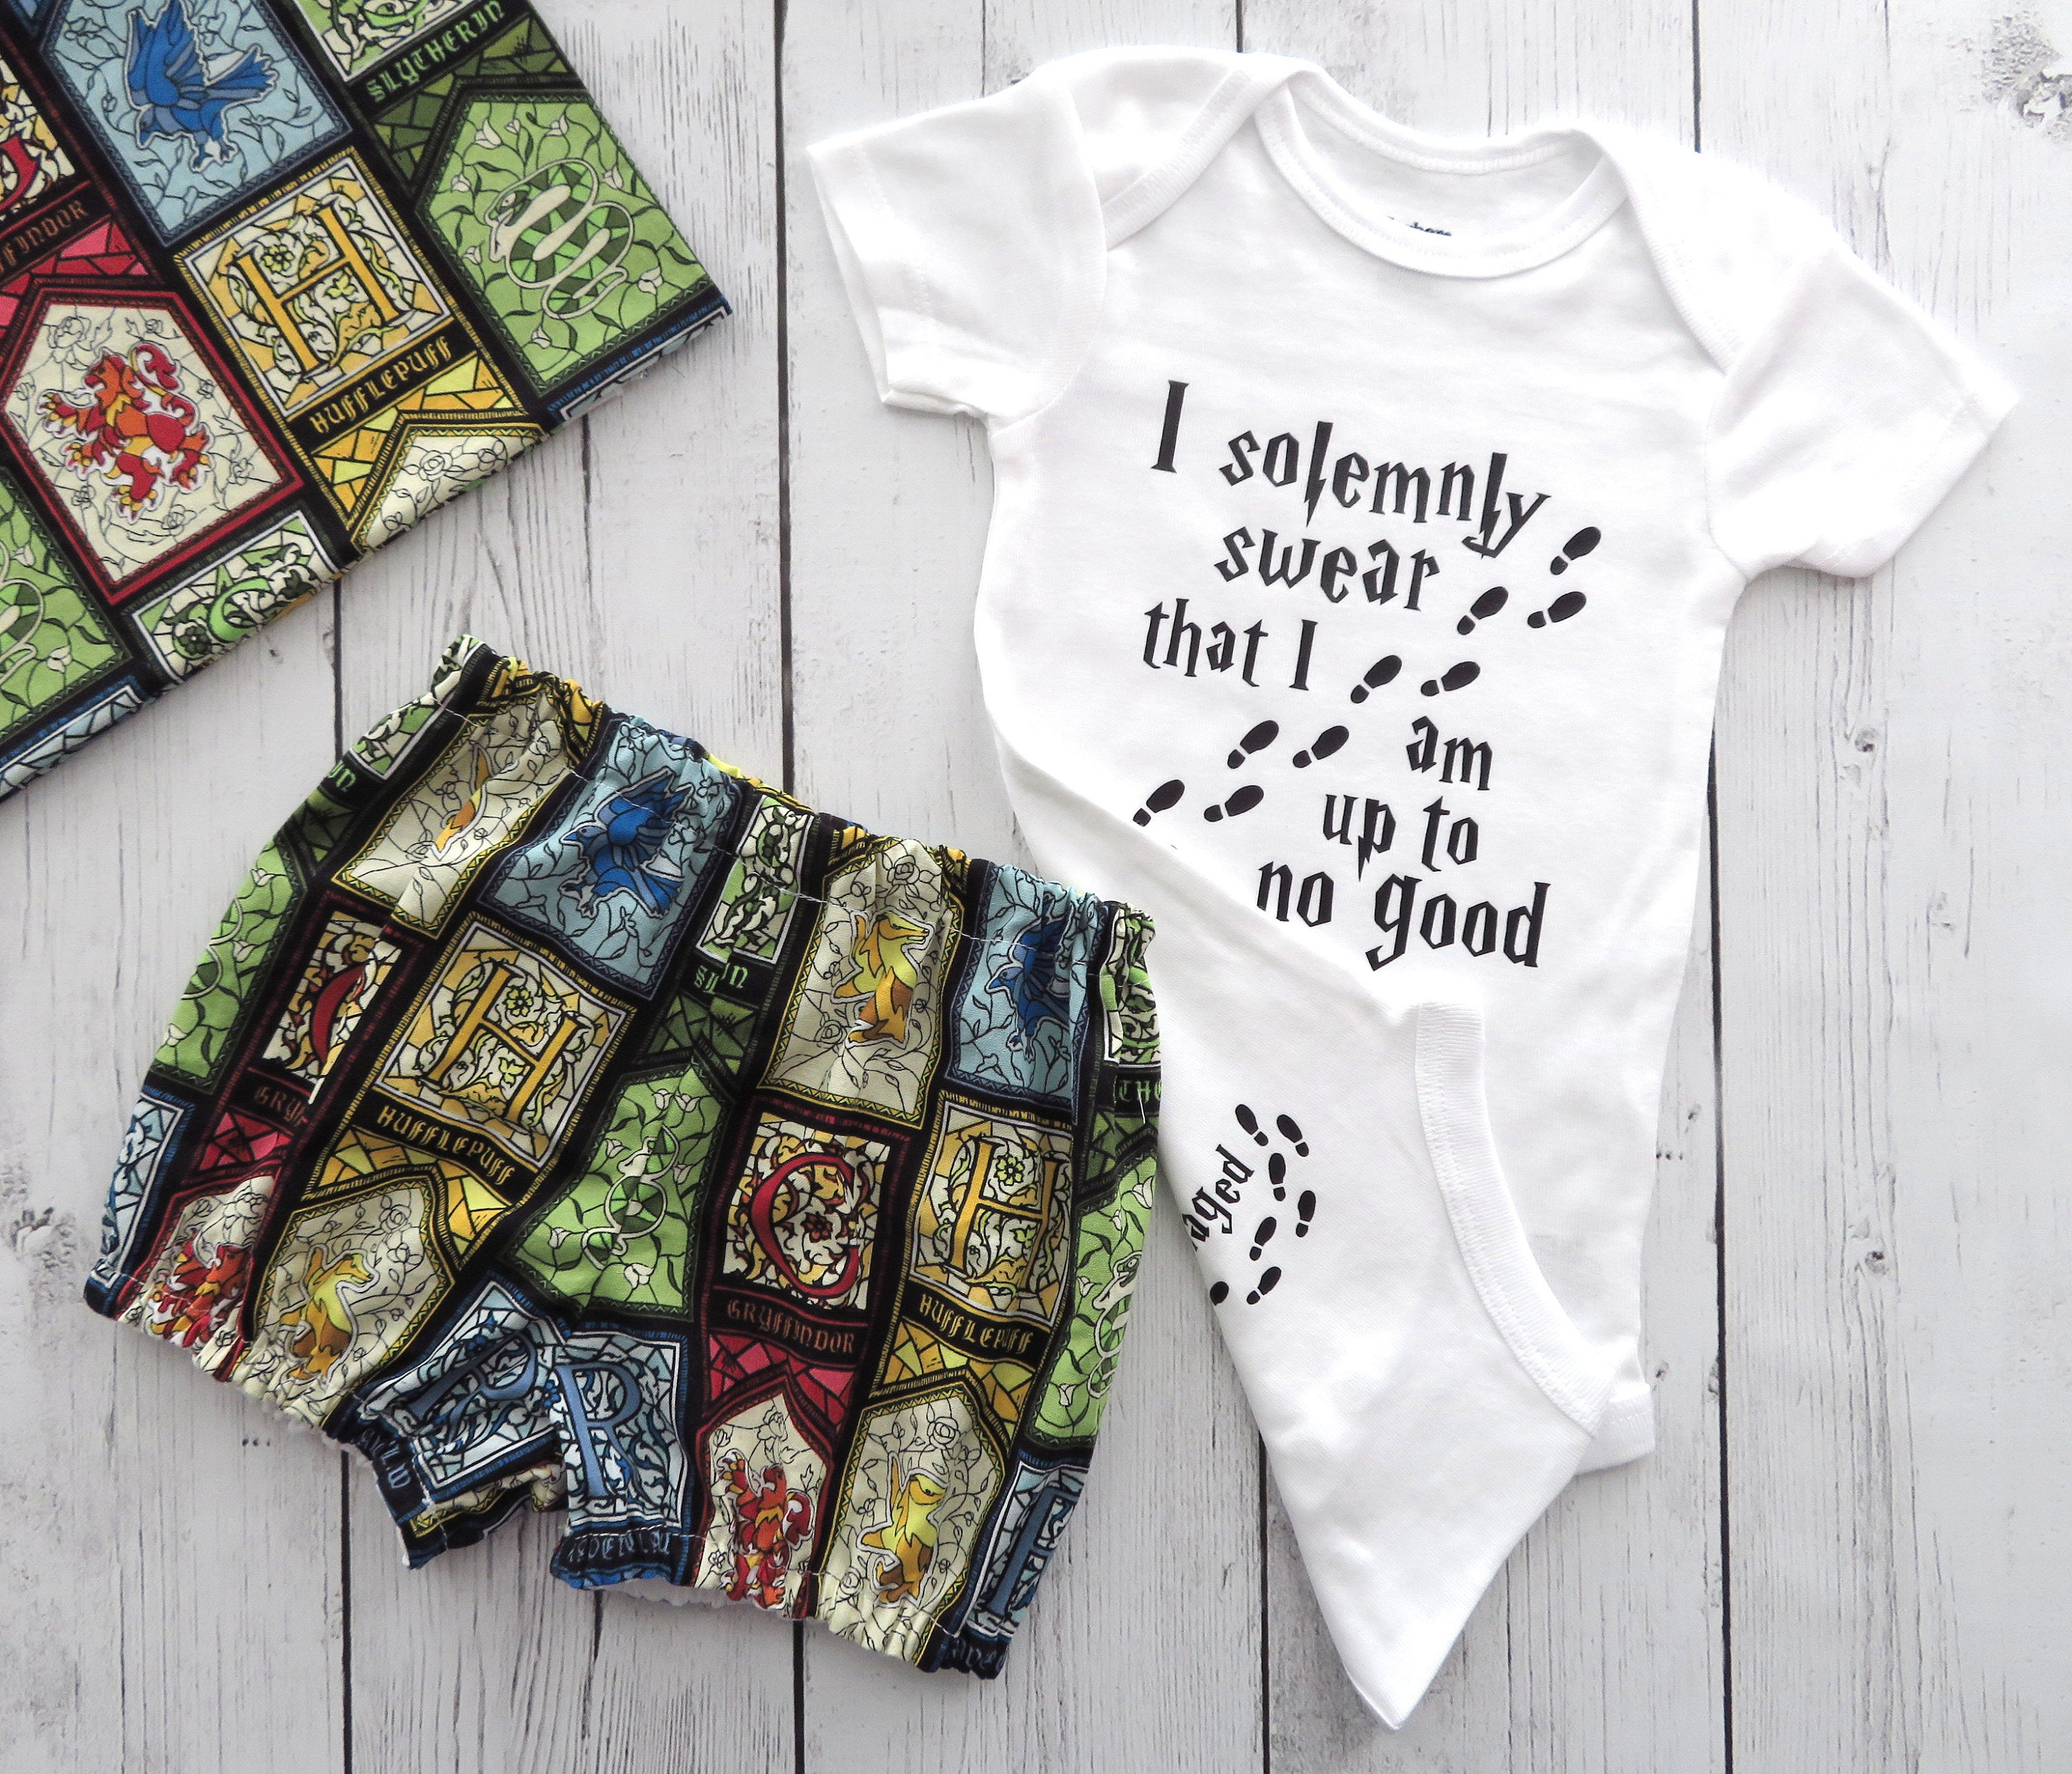 Harry Potter Baby Shower Gift - solemnly swear that I am up to no good, snuggle this muggle, mischief managed, potter diaper cover, bummies